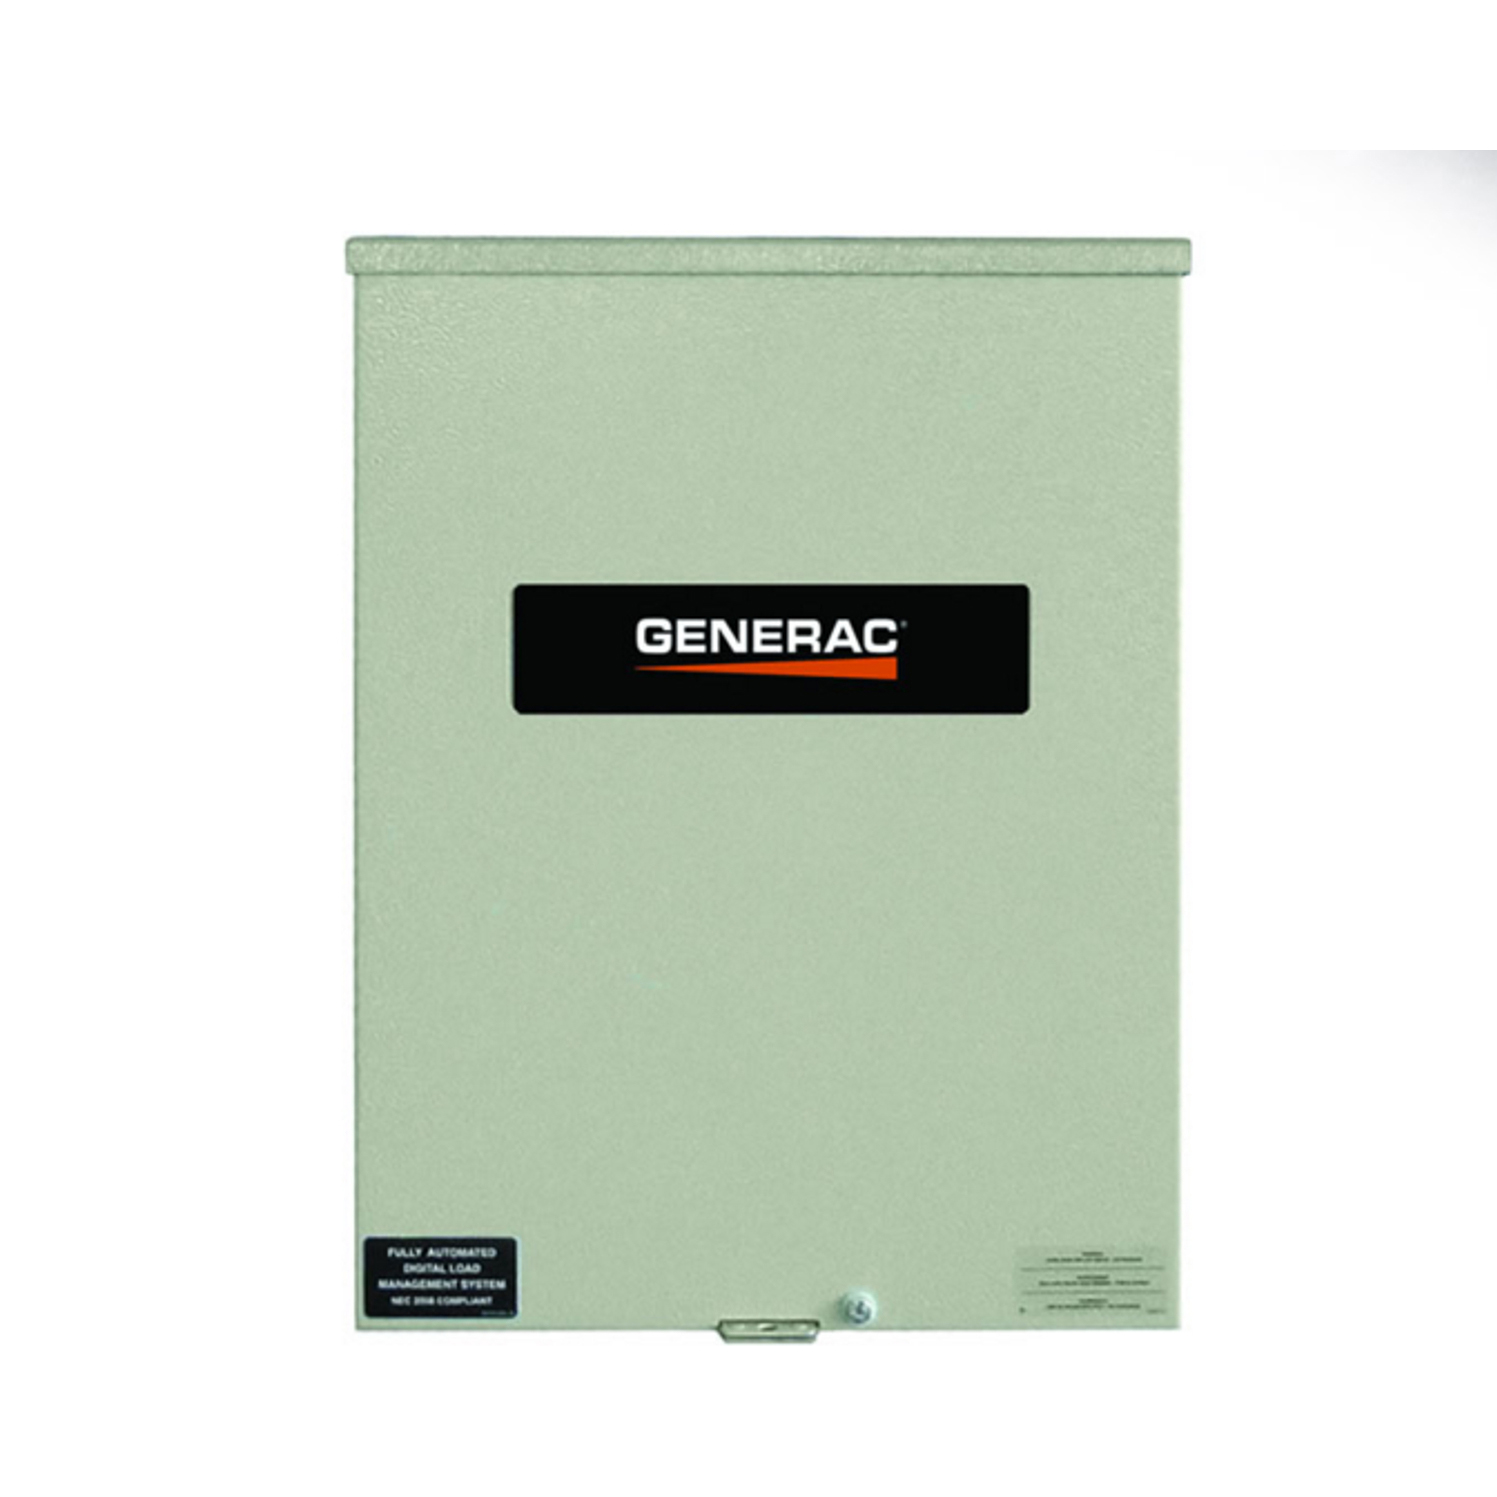 Generac Transfer Switch RTSC200A3